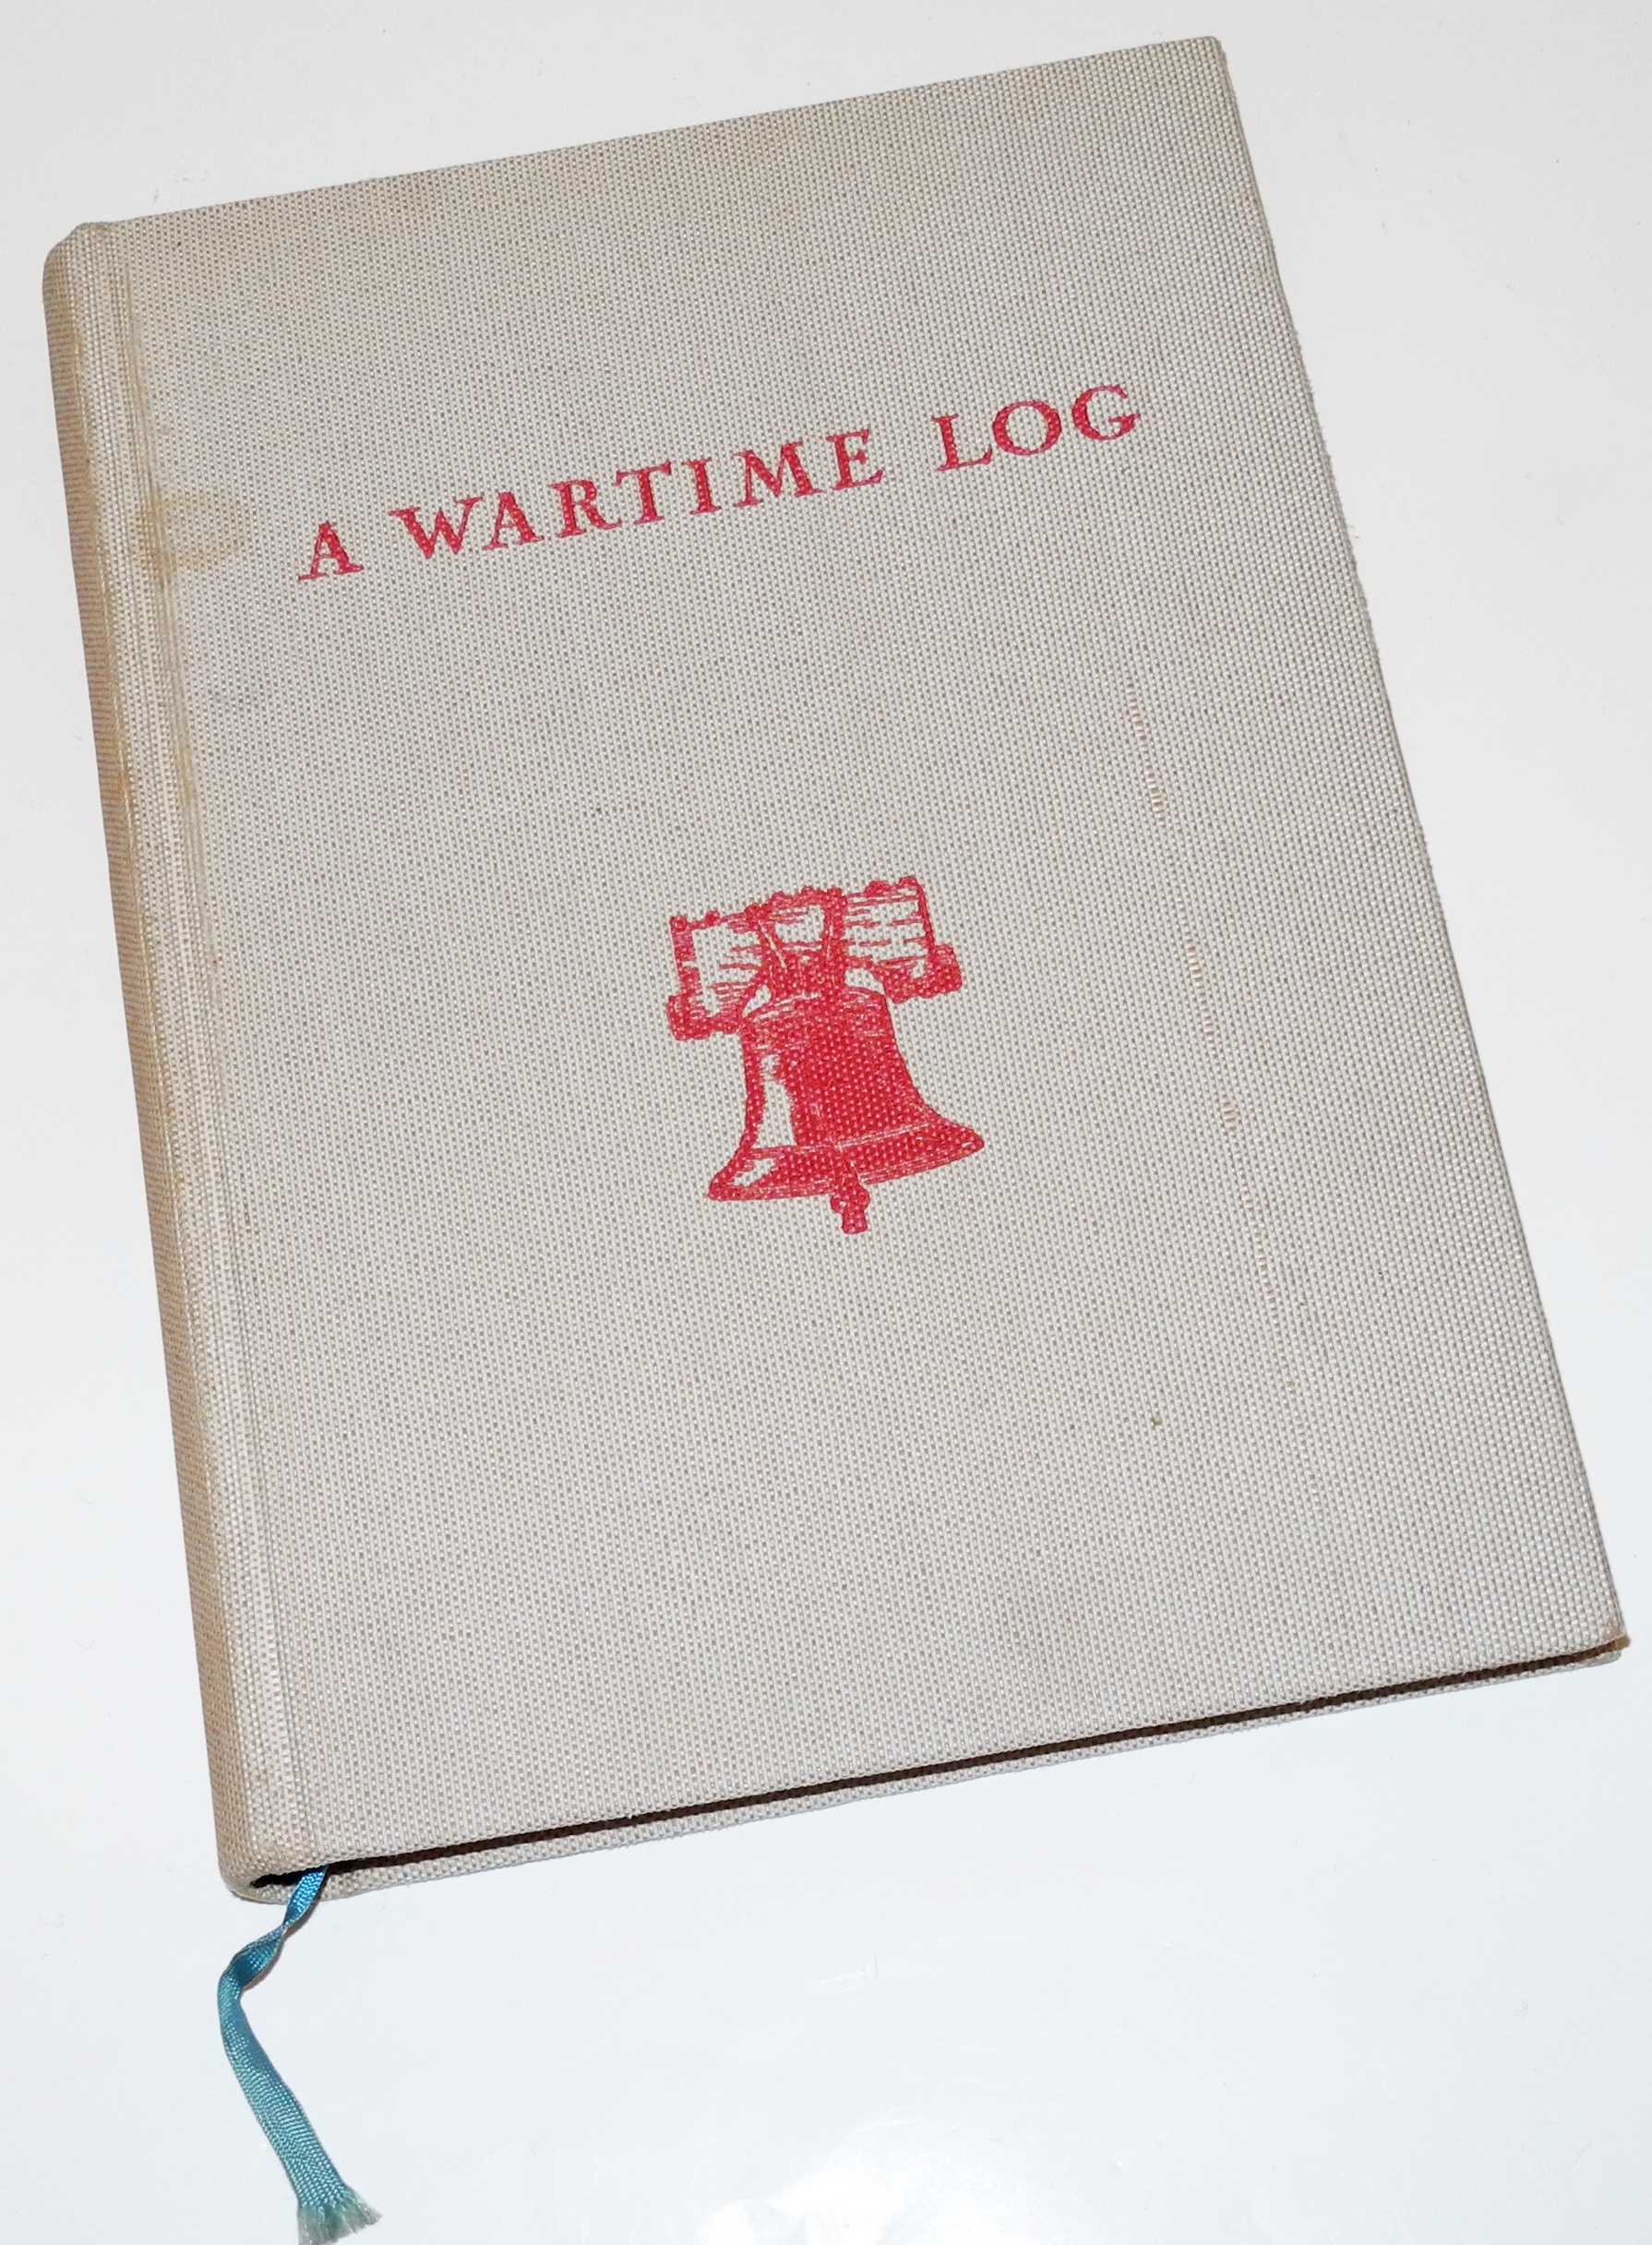 POW Wartime log/diary given by YMCA - unused